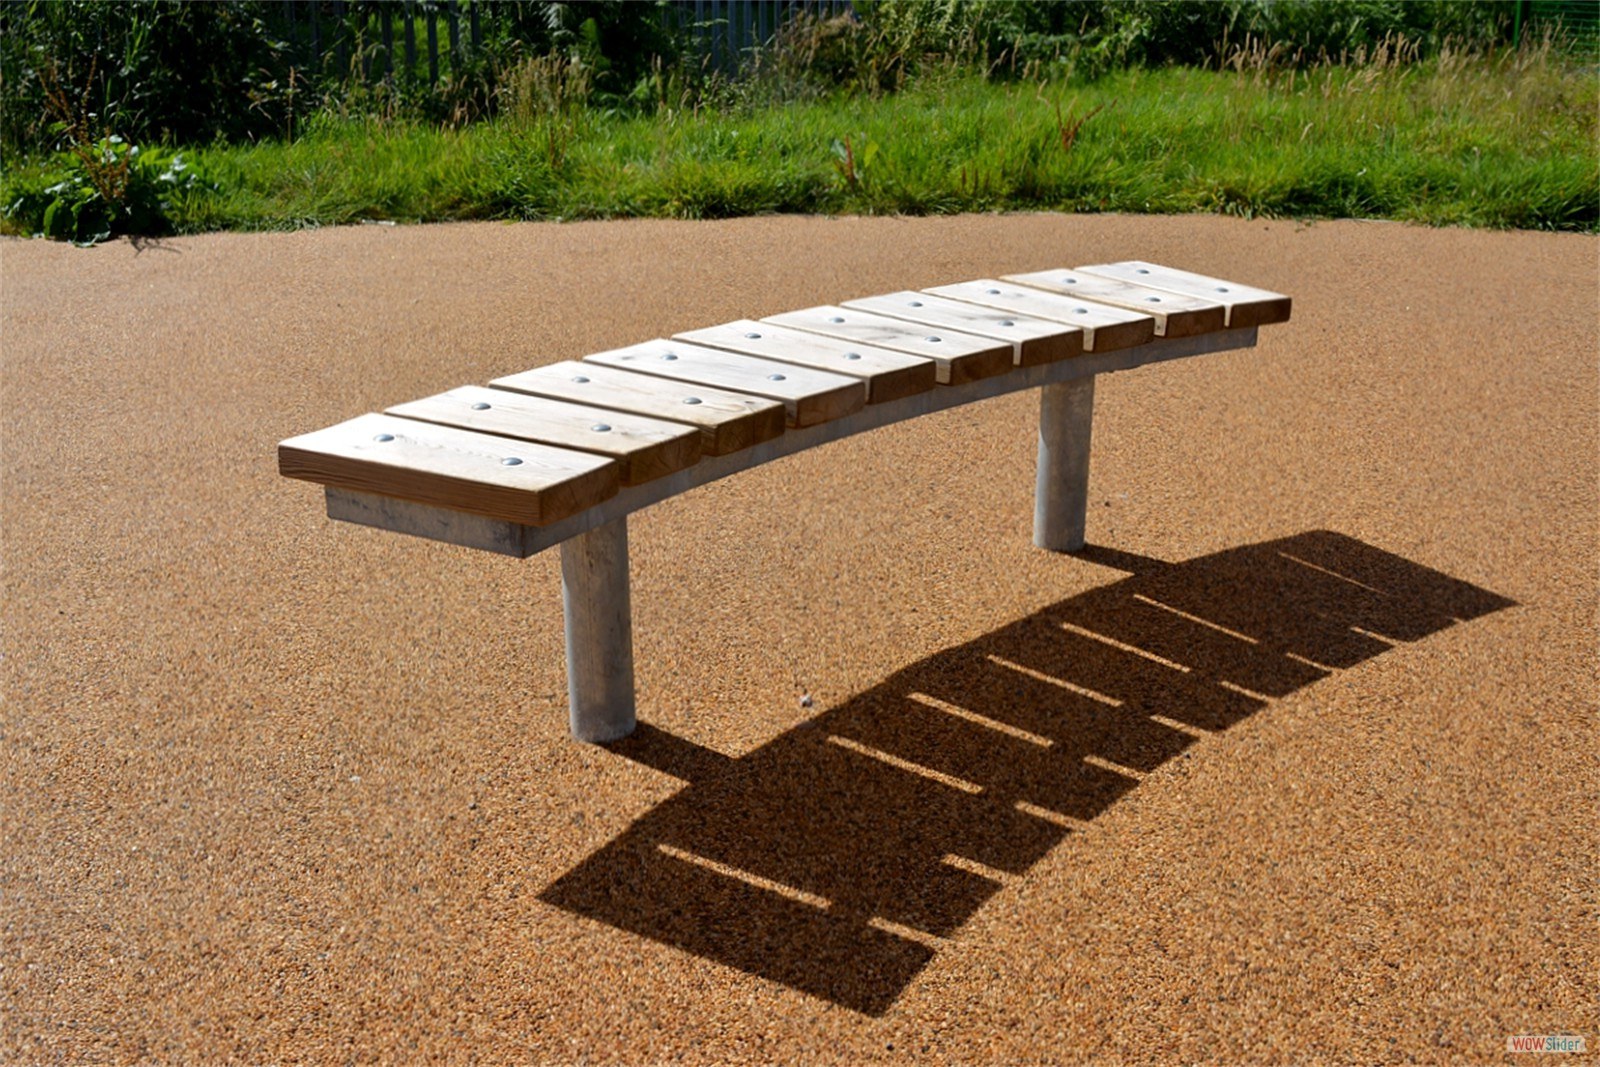 75s12 - Spalding curved bench